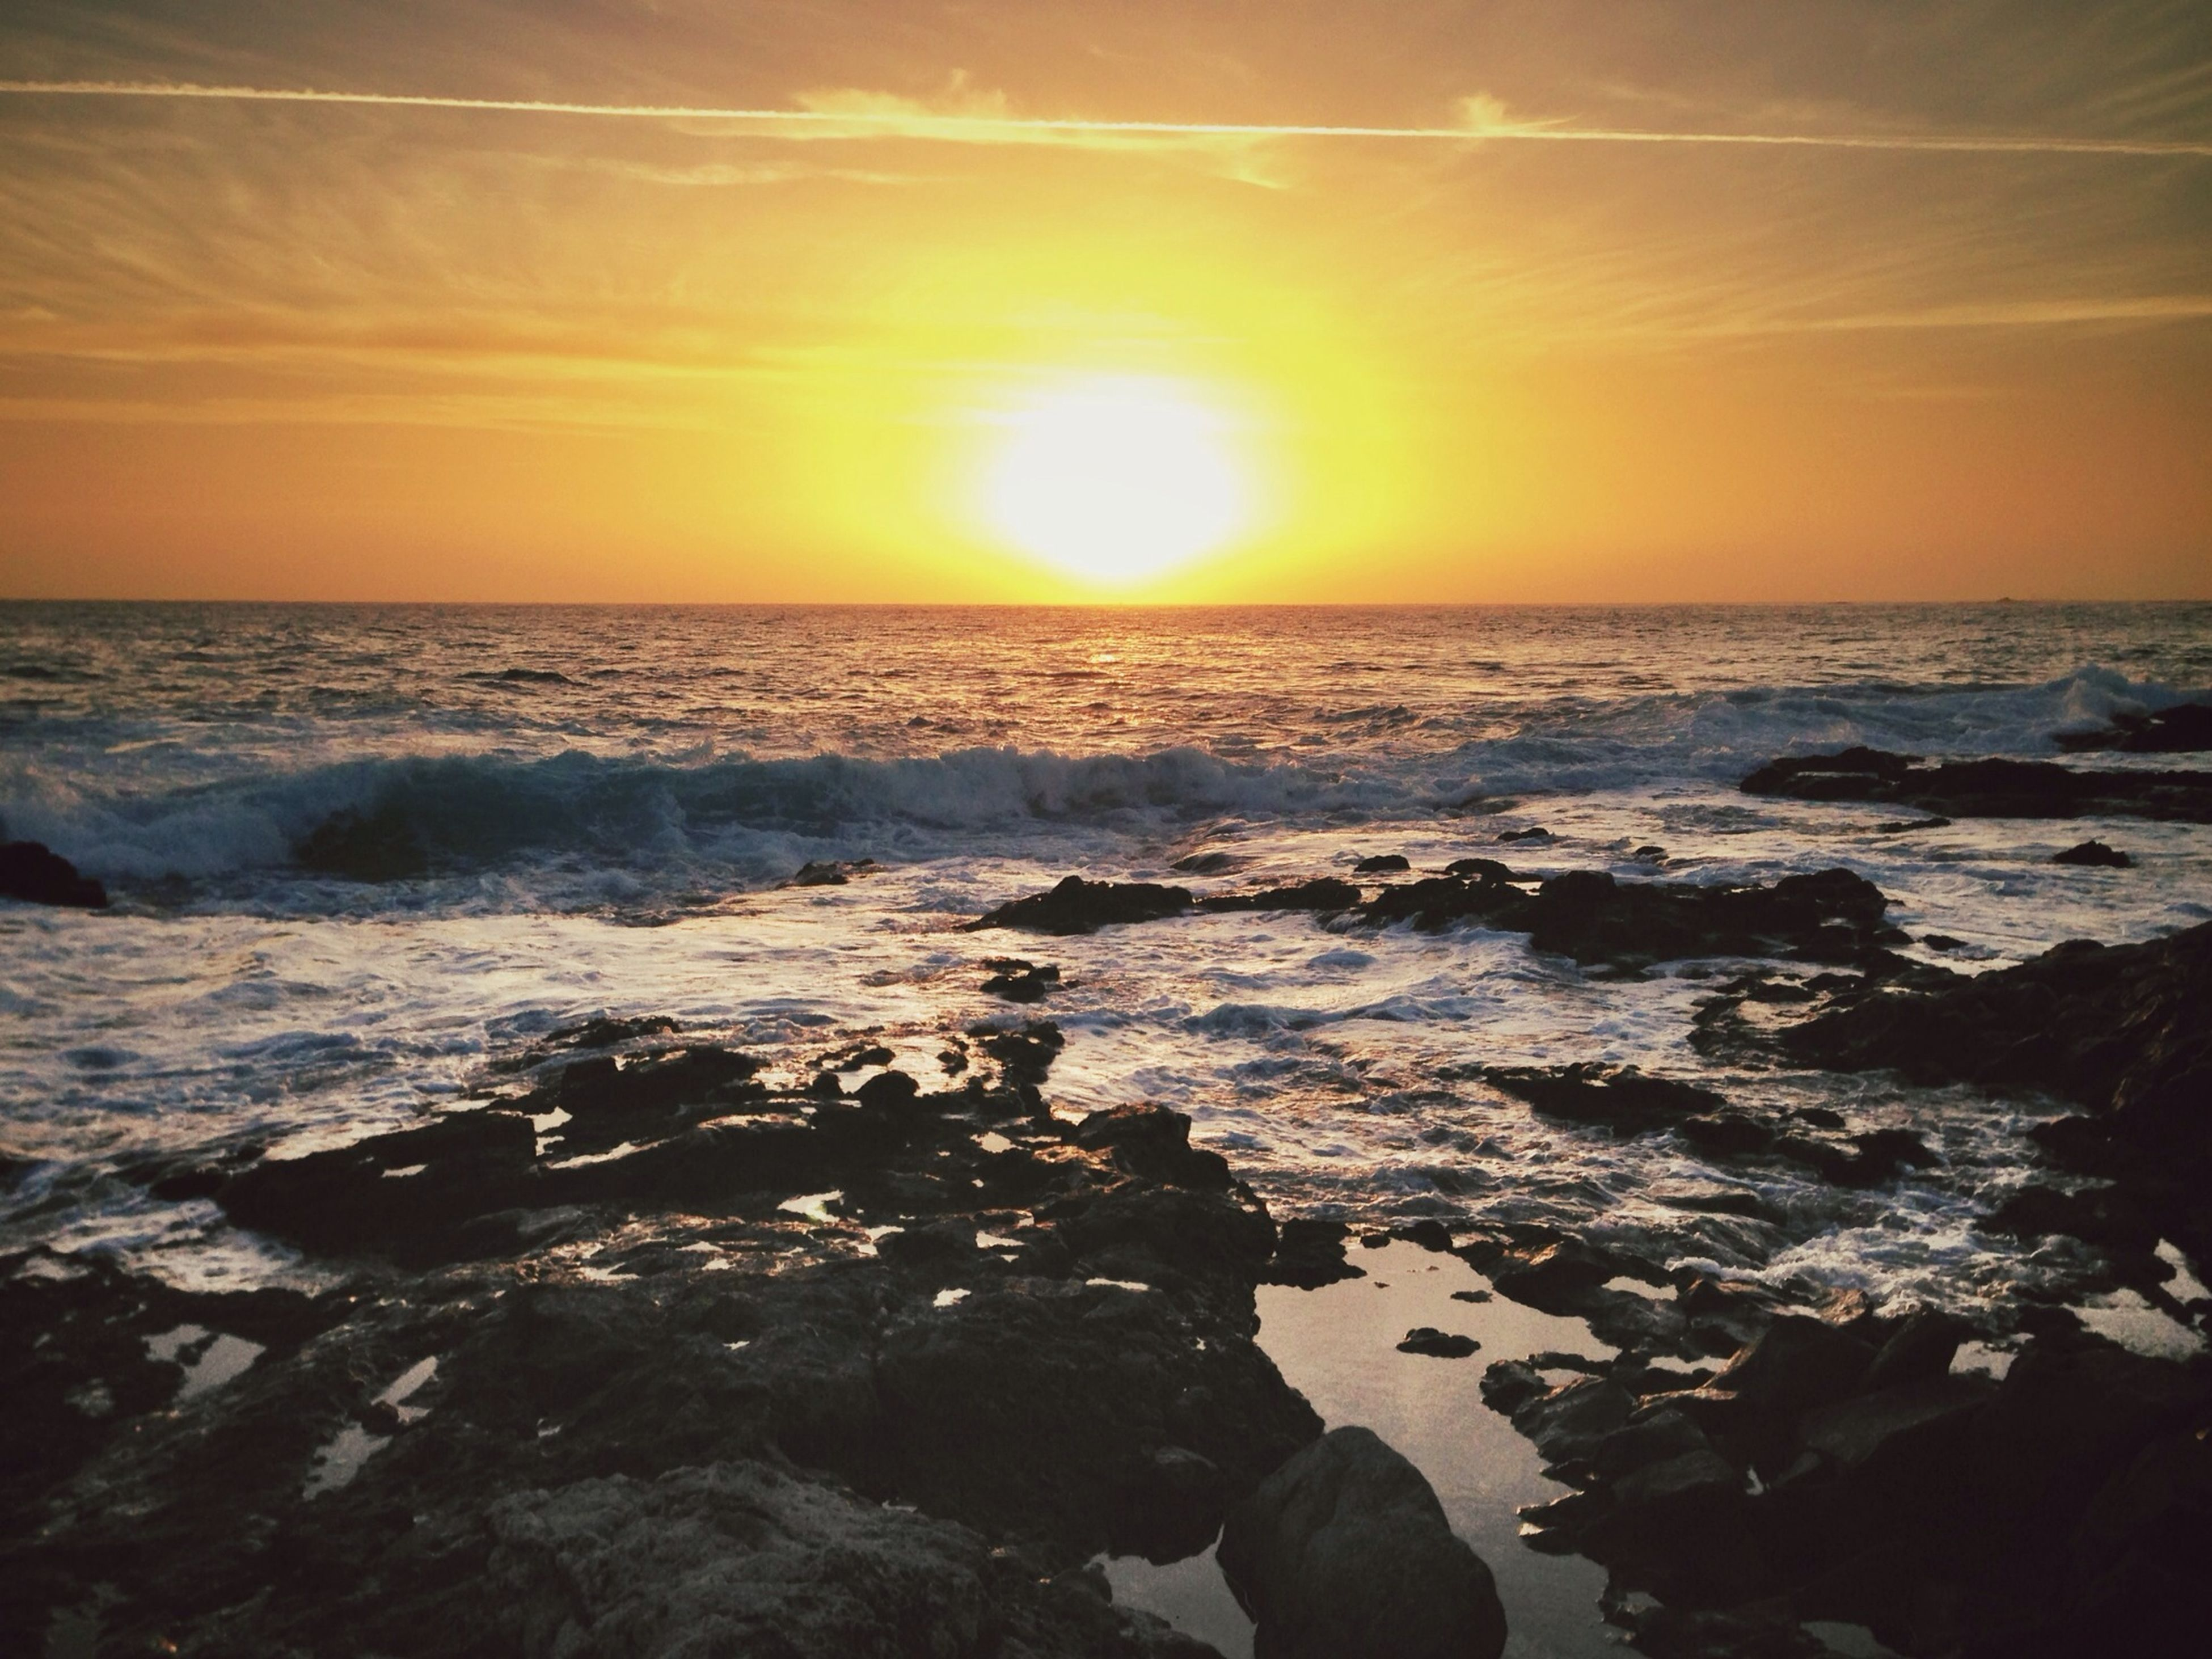 sunset, sea, water, horizon over water, scenics, beauty in nature, sun, beach, tranquil scene, orange color, tranquility, shore, sky, nature, rock - object, idyllic, wave, sunlight, reflection, remote